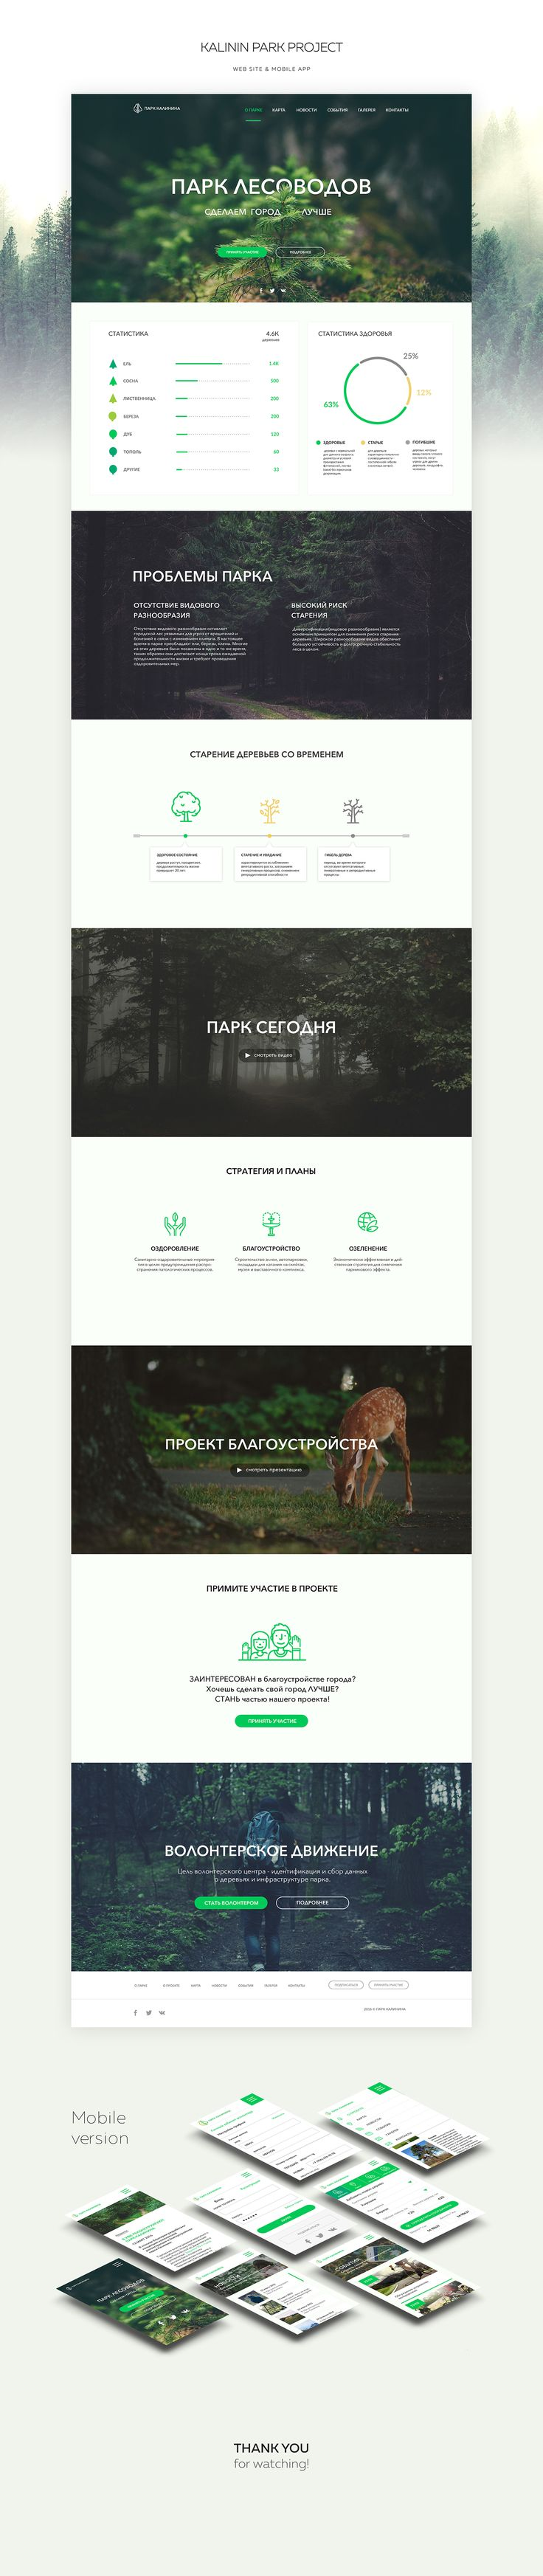 Kalinin Park on Behance